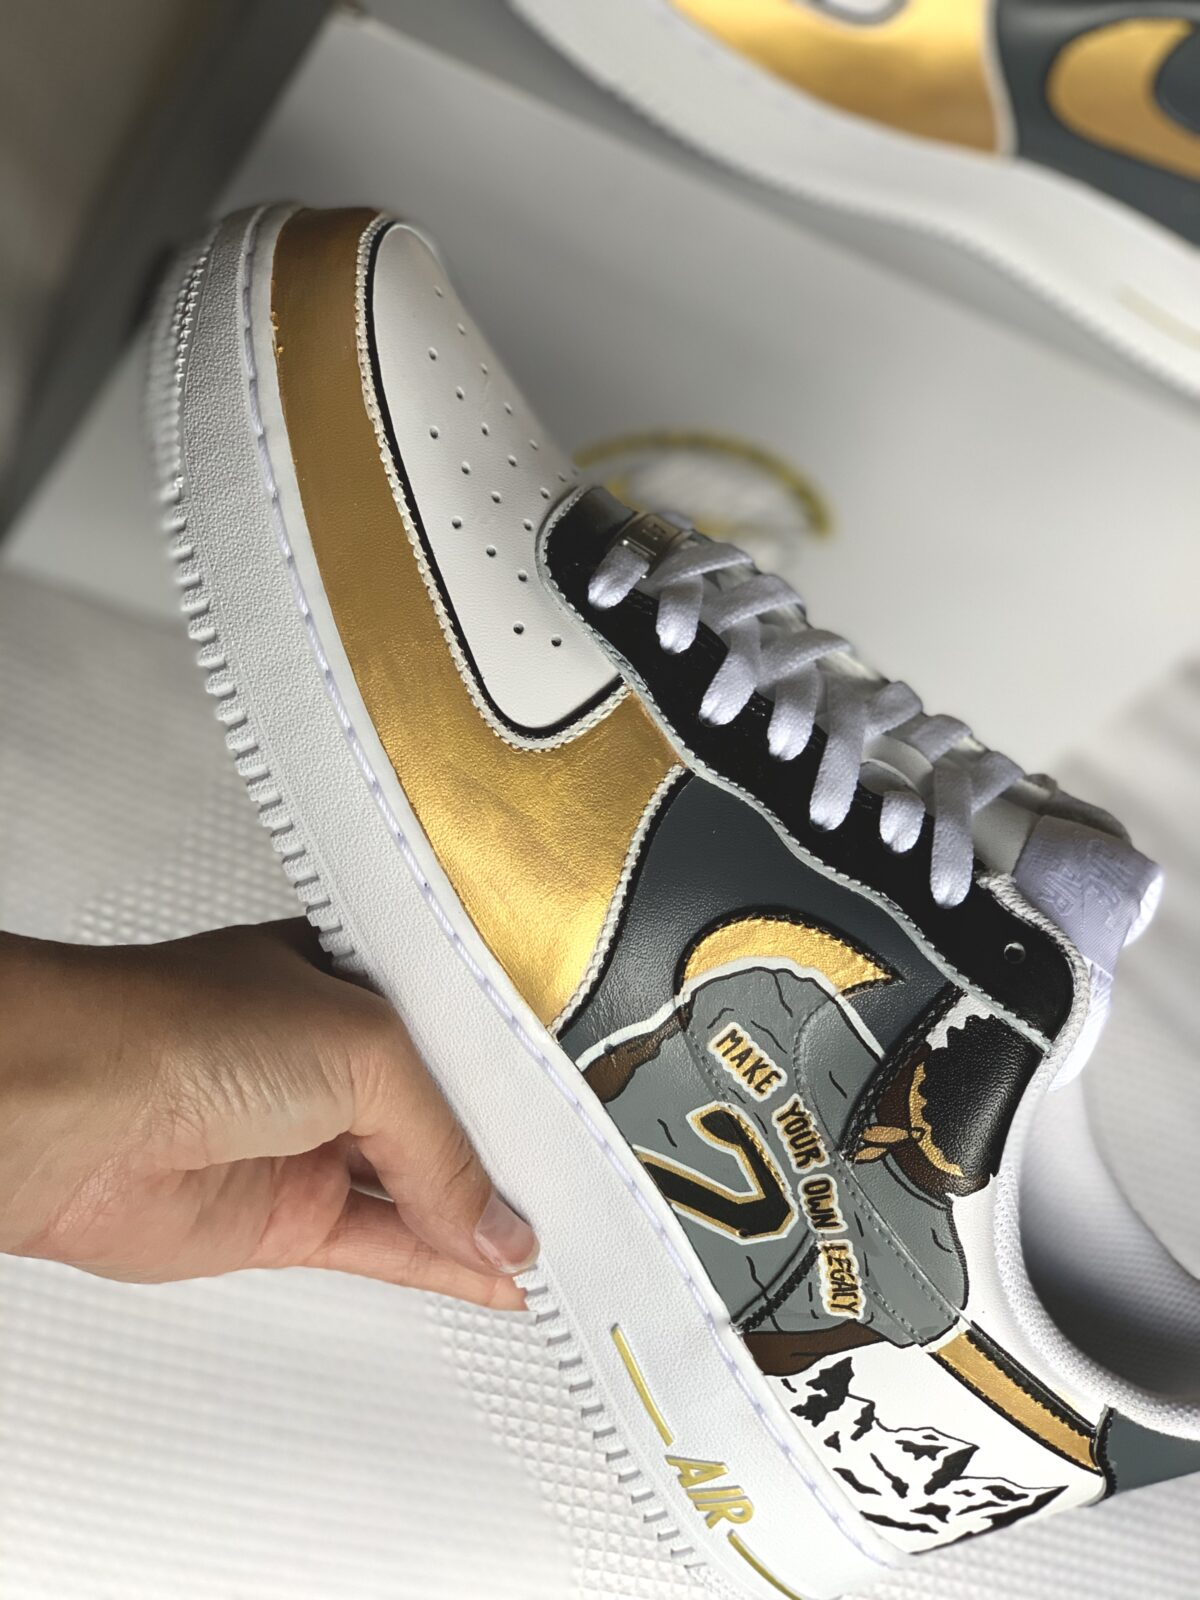 Make Your Own Legacy feat. on the B. Rice x Colorado AF1s